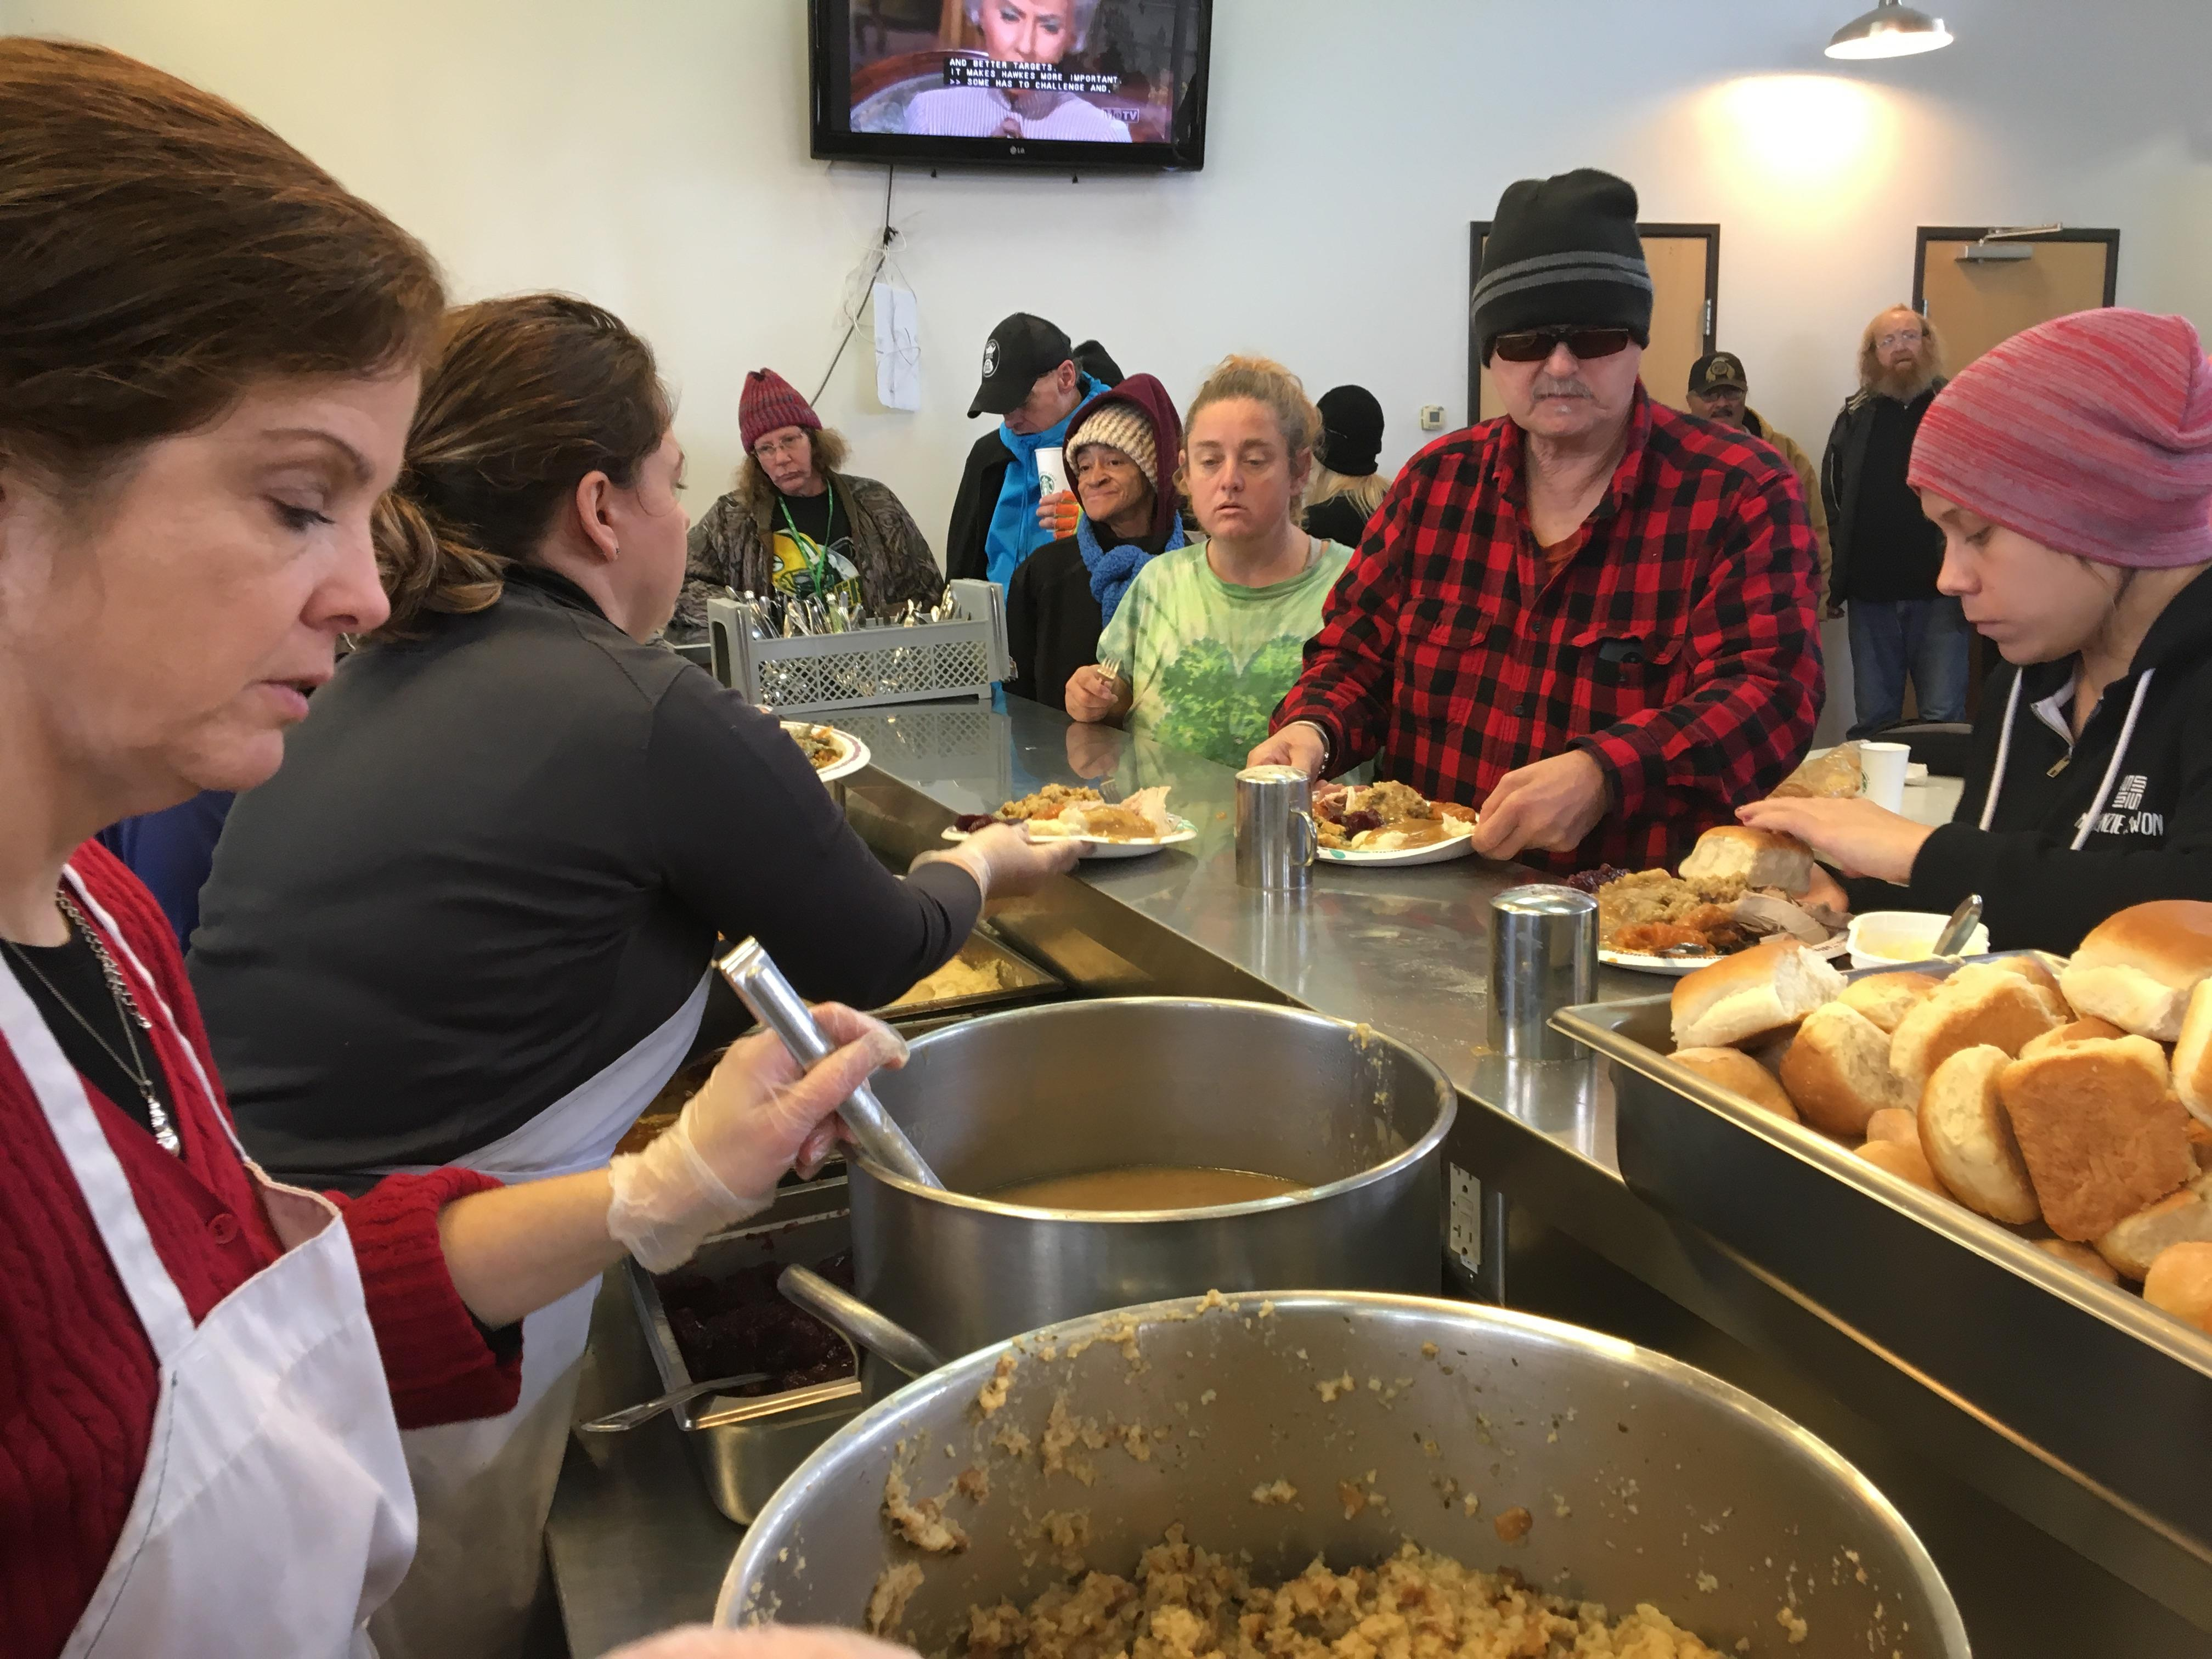 Eugene Police Department staff served a special holiday meal to 200 people at the St. Vincent de Paul Lindholm Center on Highway 99 on Friday. The food was donated by Bruns Apple, and New Day Bakery cooked the meals. The center offers daytime services to adults who are homeless. (SBG)